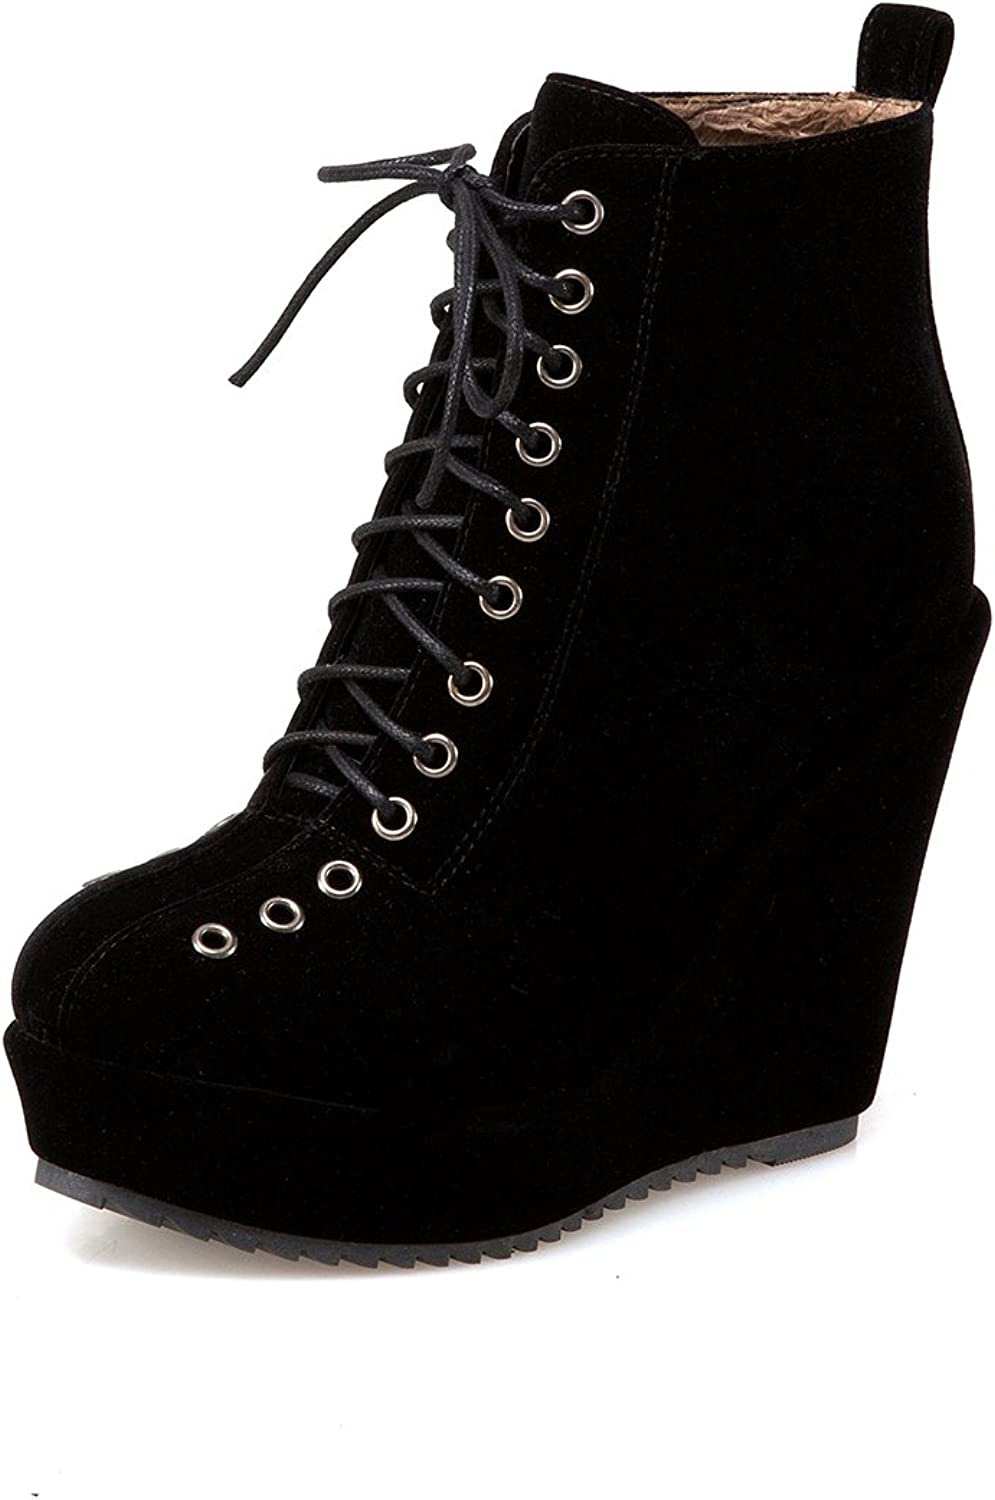 DoraTasia Cow Leather Nubuck Lace up Women's Wedge Boots